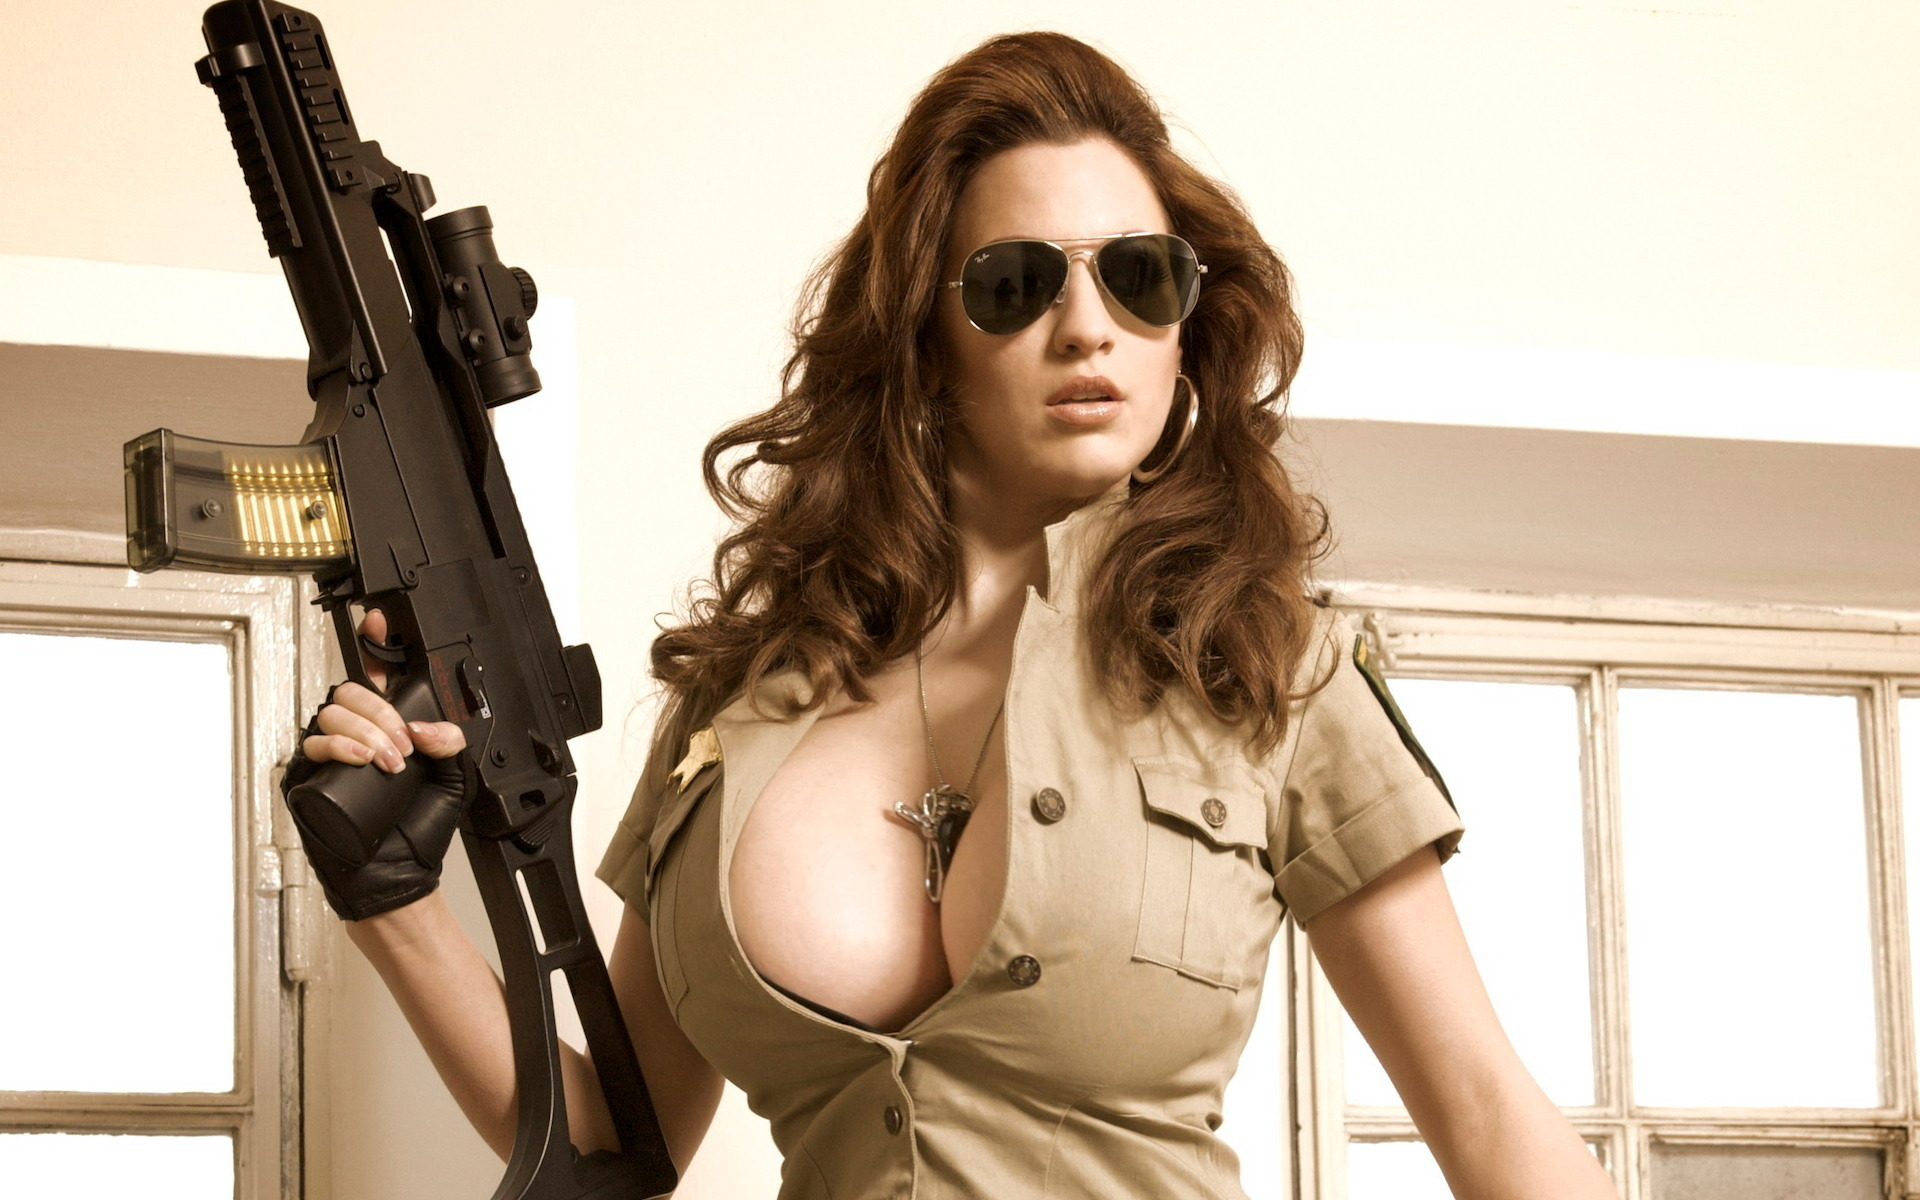 jordan-carver-bad-girl-gir-with-the-gun-